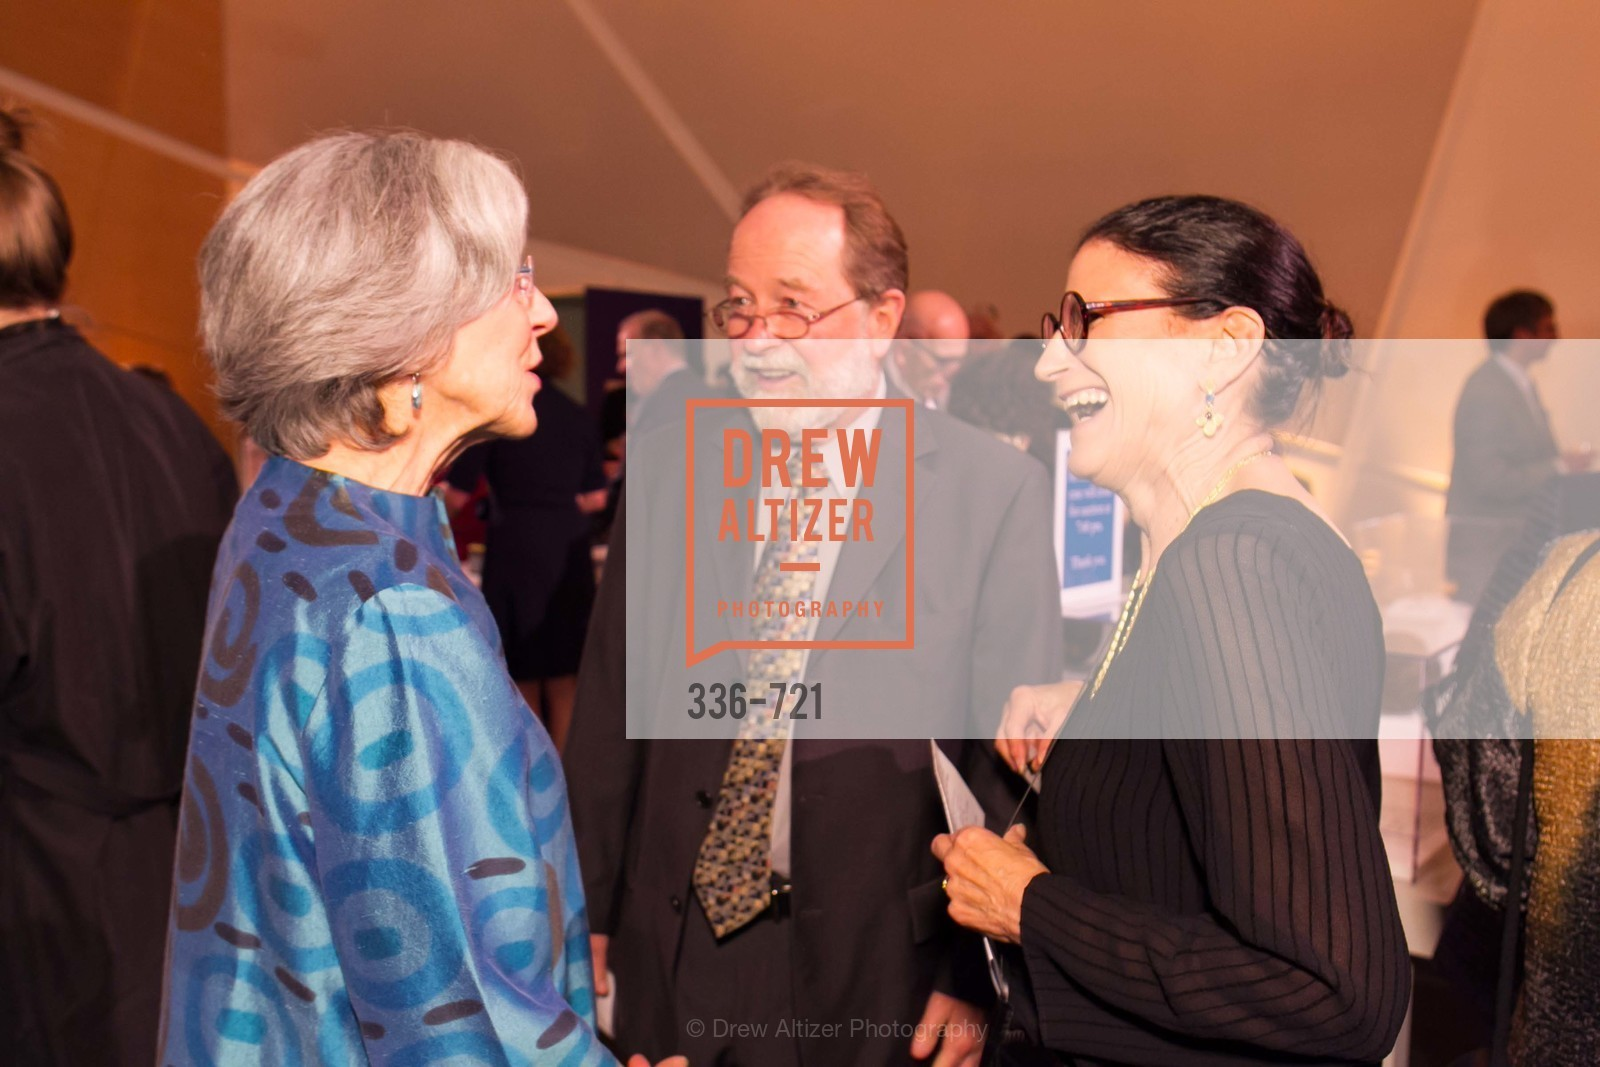 Shelly Saxe, Tony Henning, Carol Henning, The 2015 Dorothy Saxe Invitational Celebration at the JEWISH MUSEUM, US, May 12th, 2015,Drew Altizer, Drew Altizer Photography, full-service agency, private events, San Francisco photographer, photographer california